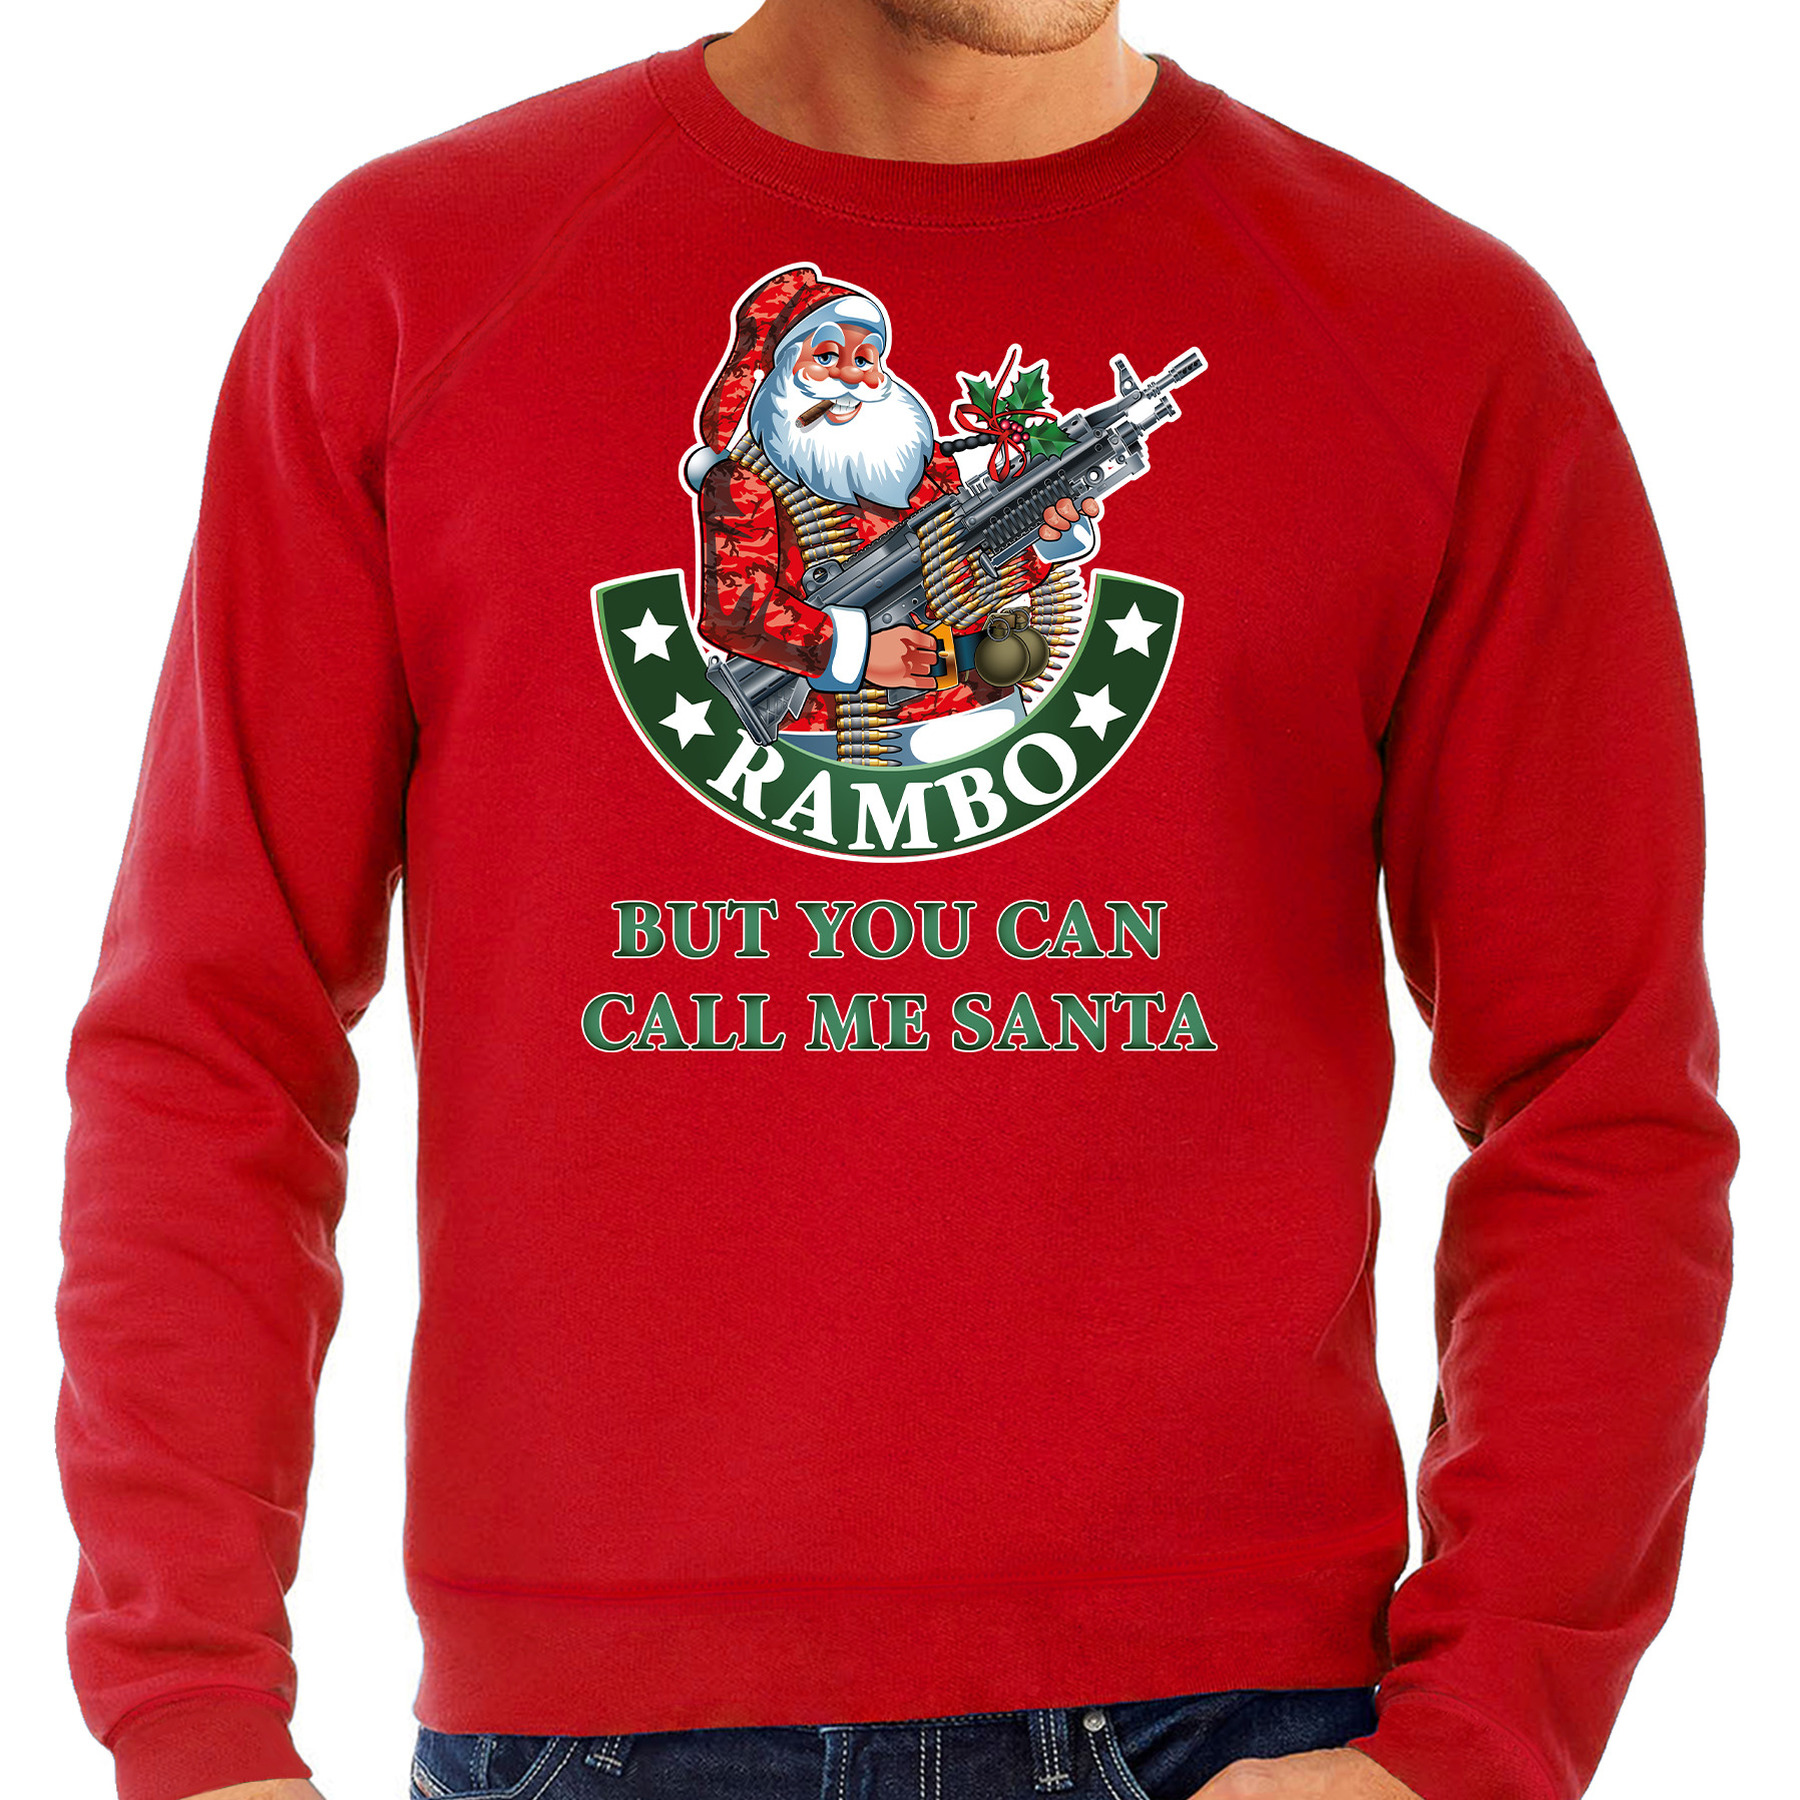 Rode foute Kersttrui - Kerstkleding Rambo but you can call me Santa voor heren grote maten 4XL (60)